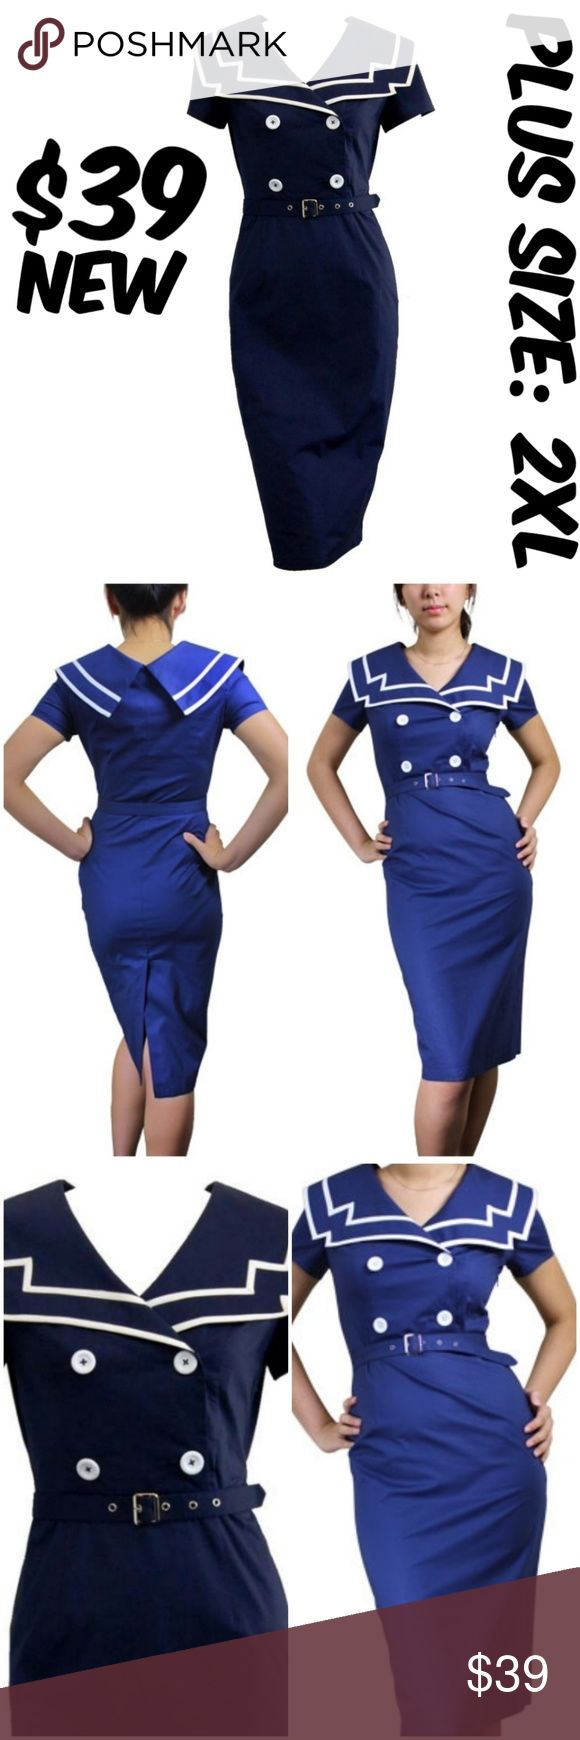 """Nautical Girl Pin Up Sailor Clothing Dress Vintage Nautical Girl Pin Up Sailor Clothing Dress Vintage BUST: 50"""" WAIST: 42"""" CONDITION: NEW BUT NEEDS SOME IRONING #C3 Dresses"""